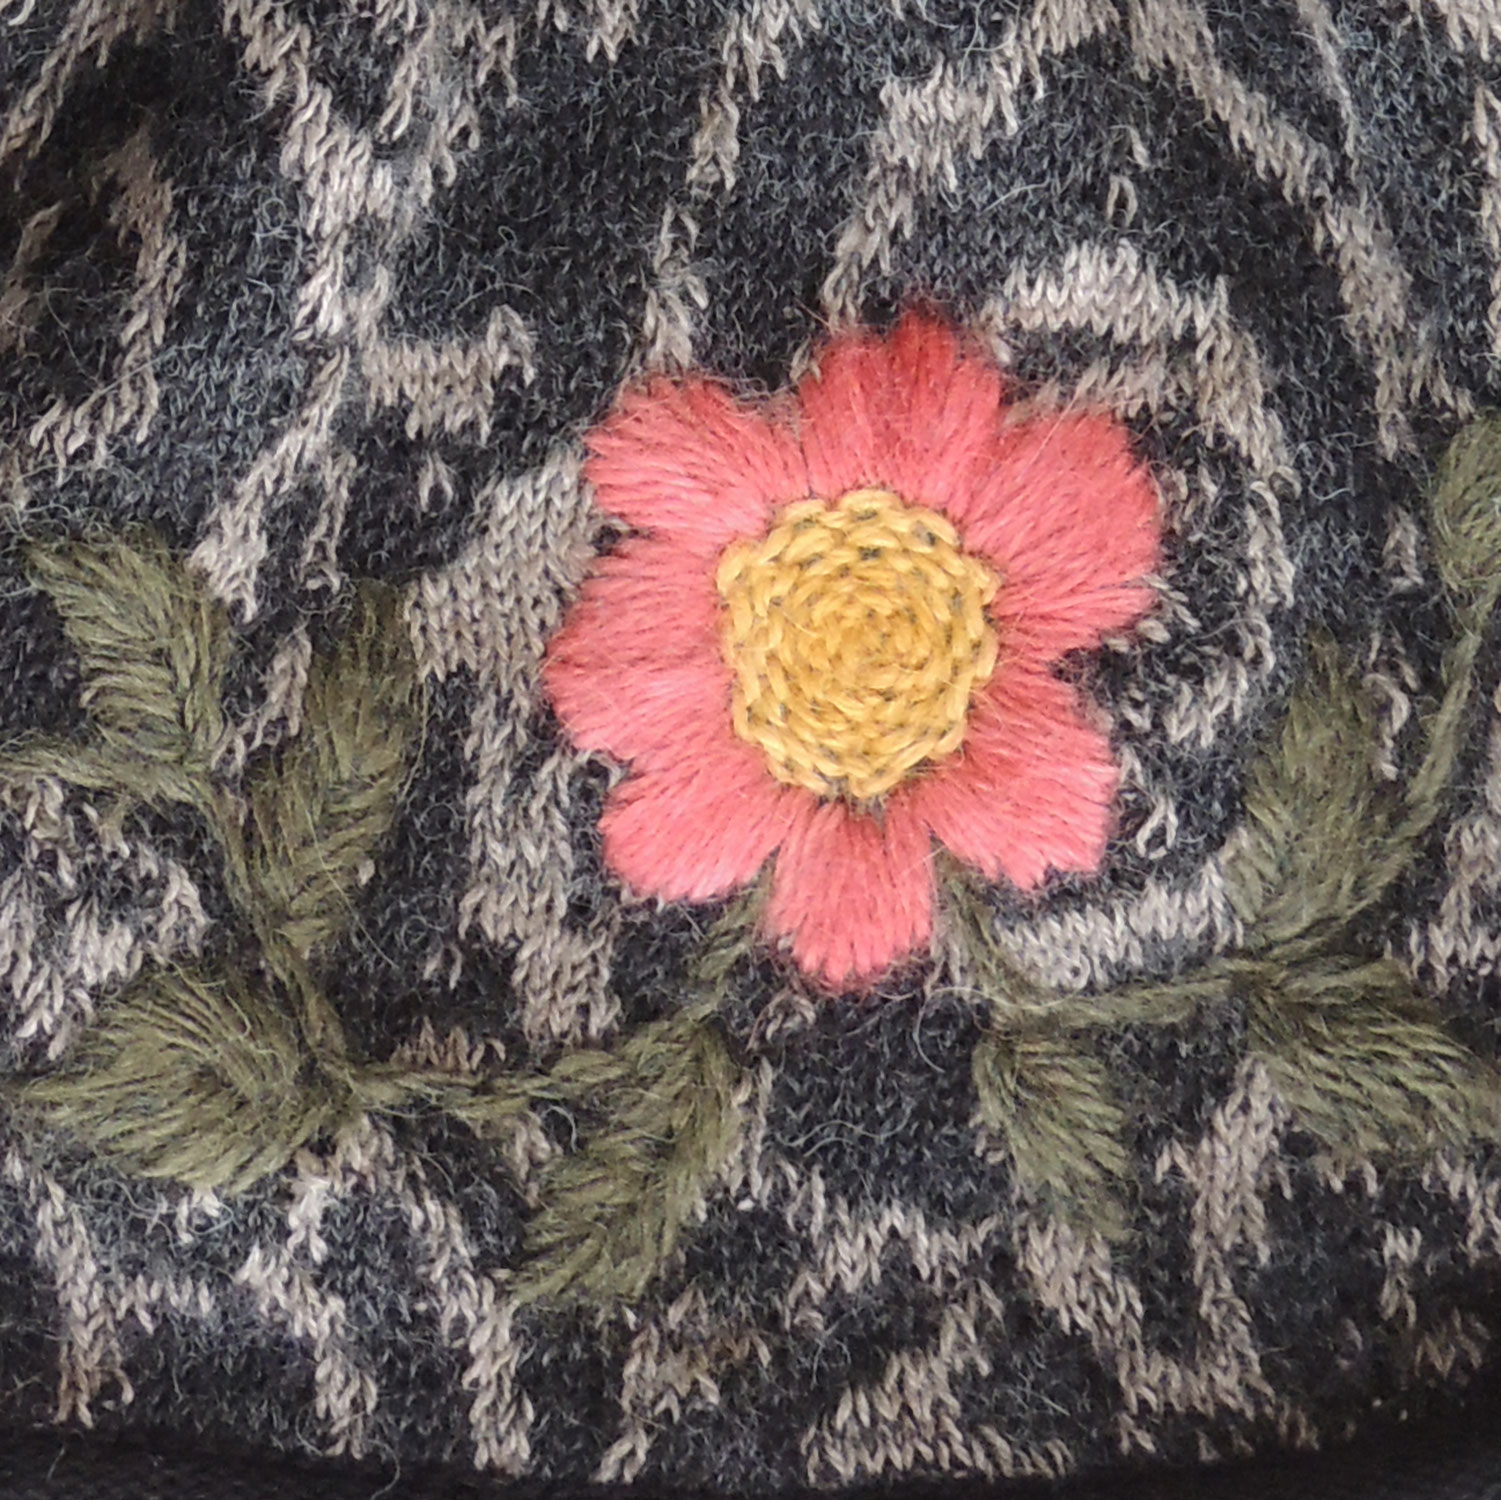 49d73dd9 Women's beanie / hat black - light taupe with pom pom and embroidered  details, alpaca